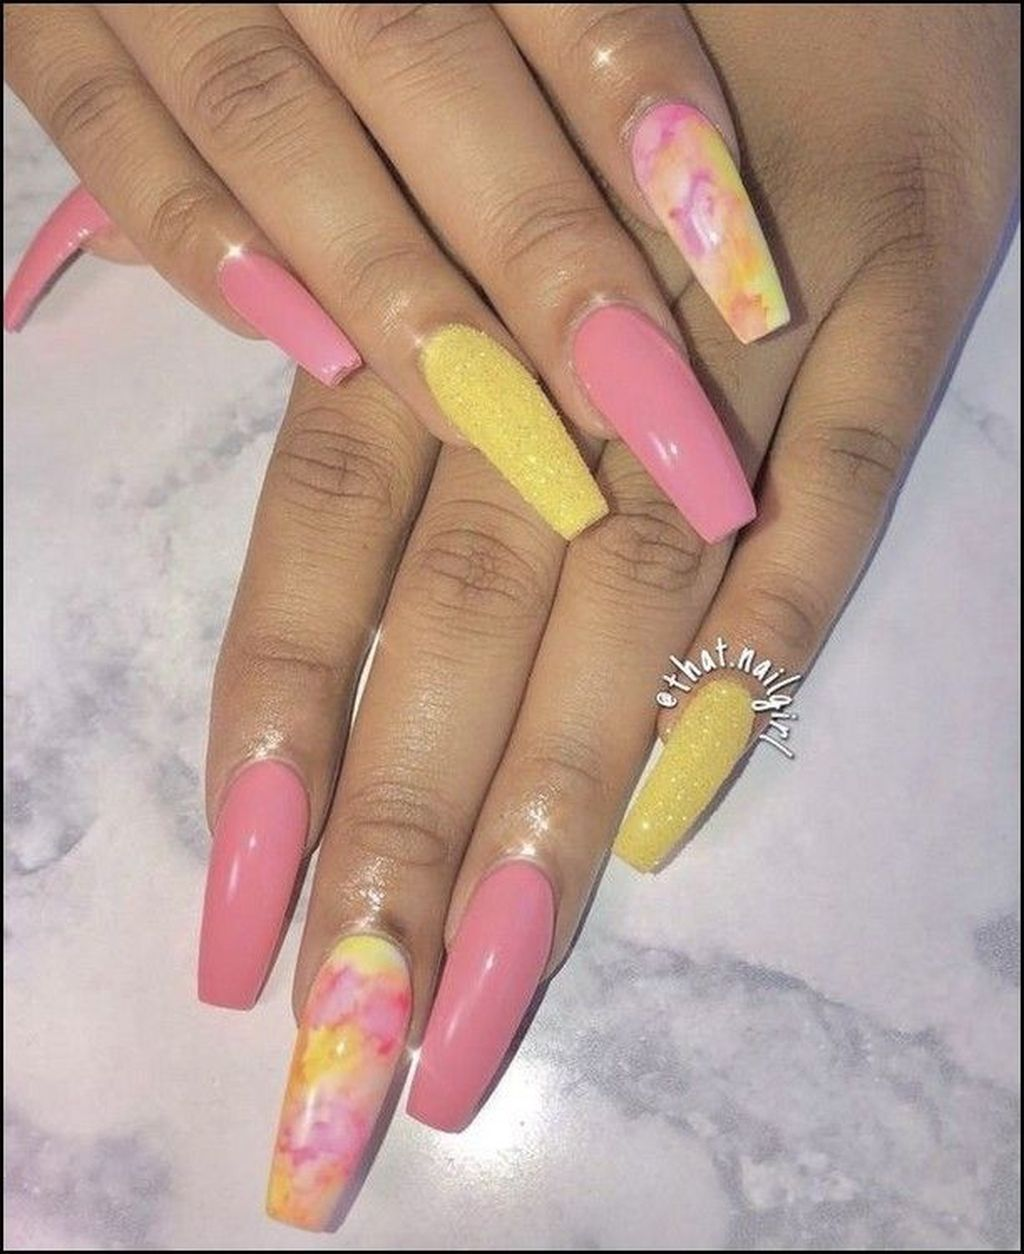 130 Casual Acrylic Nail Art Designs Ideas To Fascinate Your Admirers 6 Thereds Me French Tip Acrylic Nails Pretty Acrylic Nails White Acrylic Nails